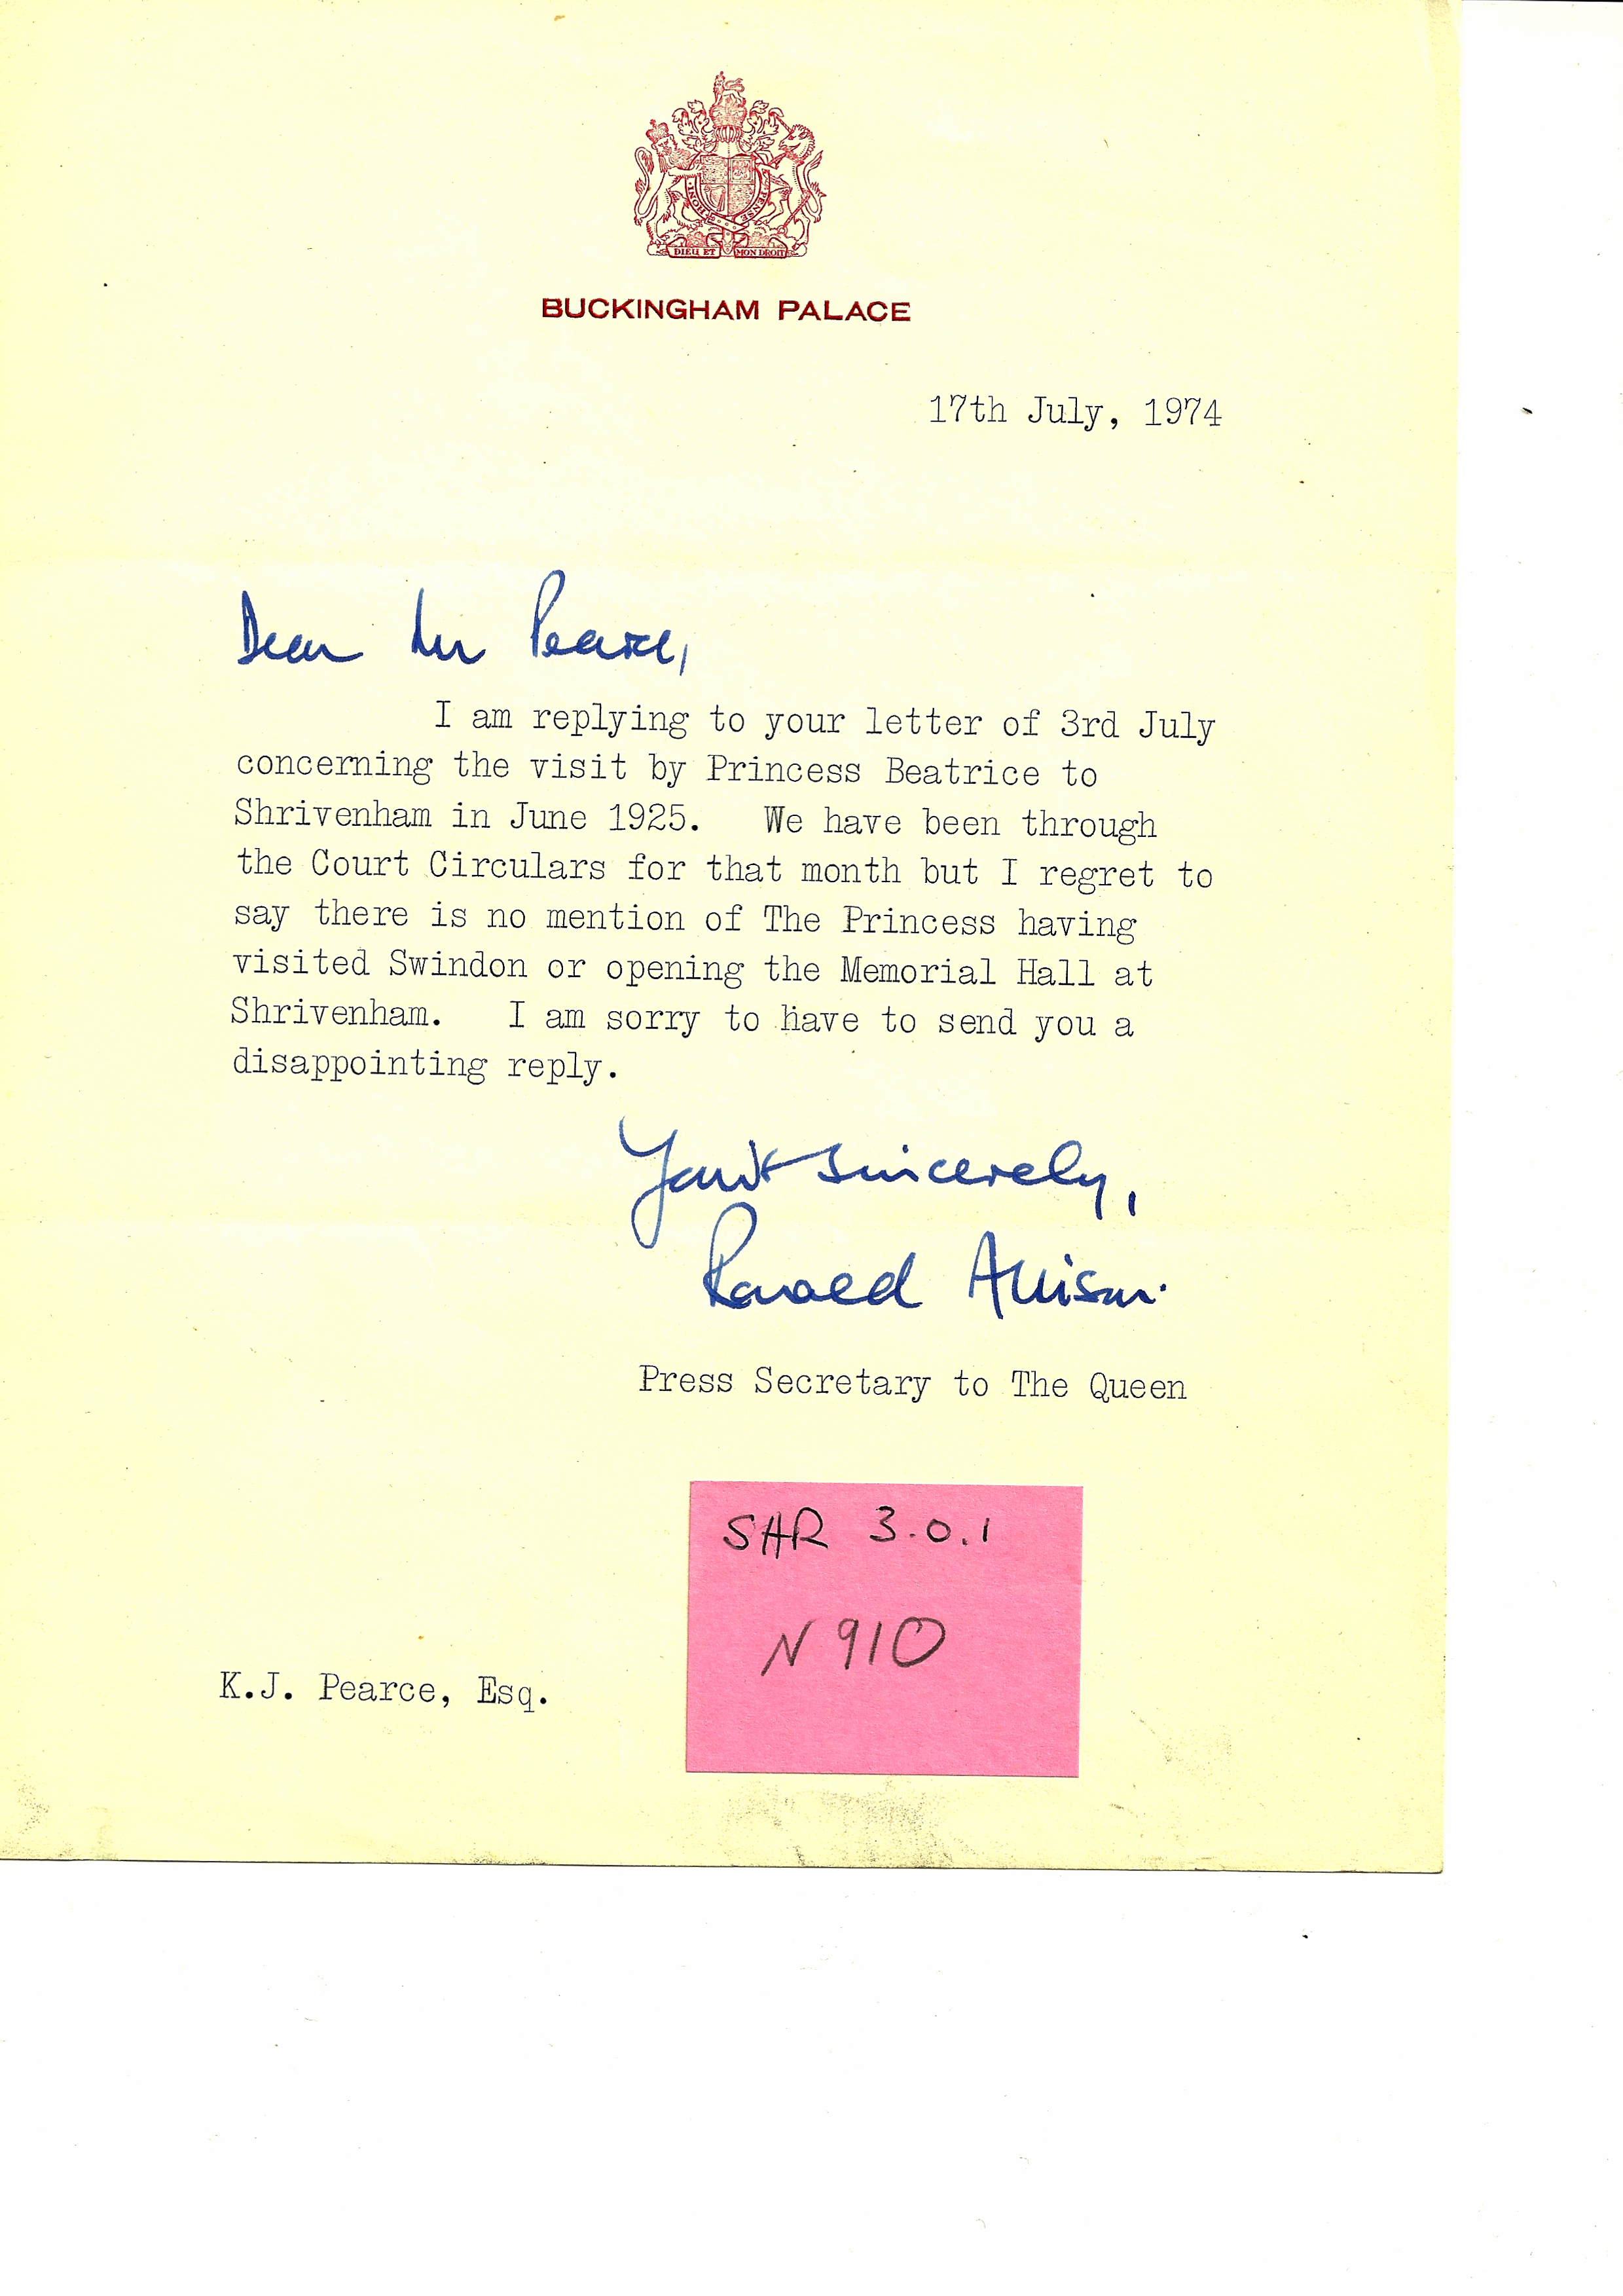 Letter from Buckingham Palace, Visit of Princess Beatrice in 1925.